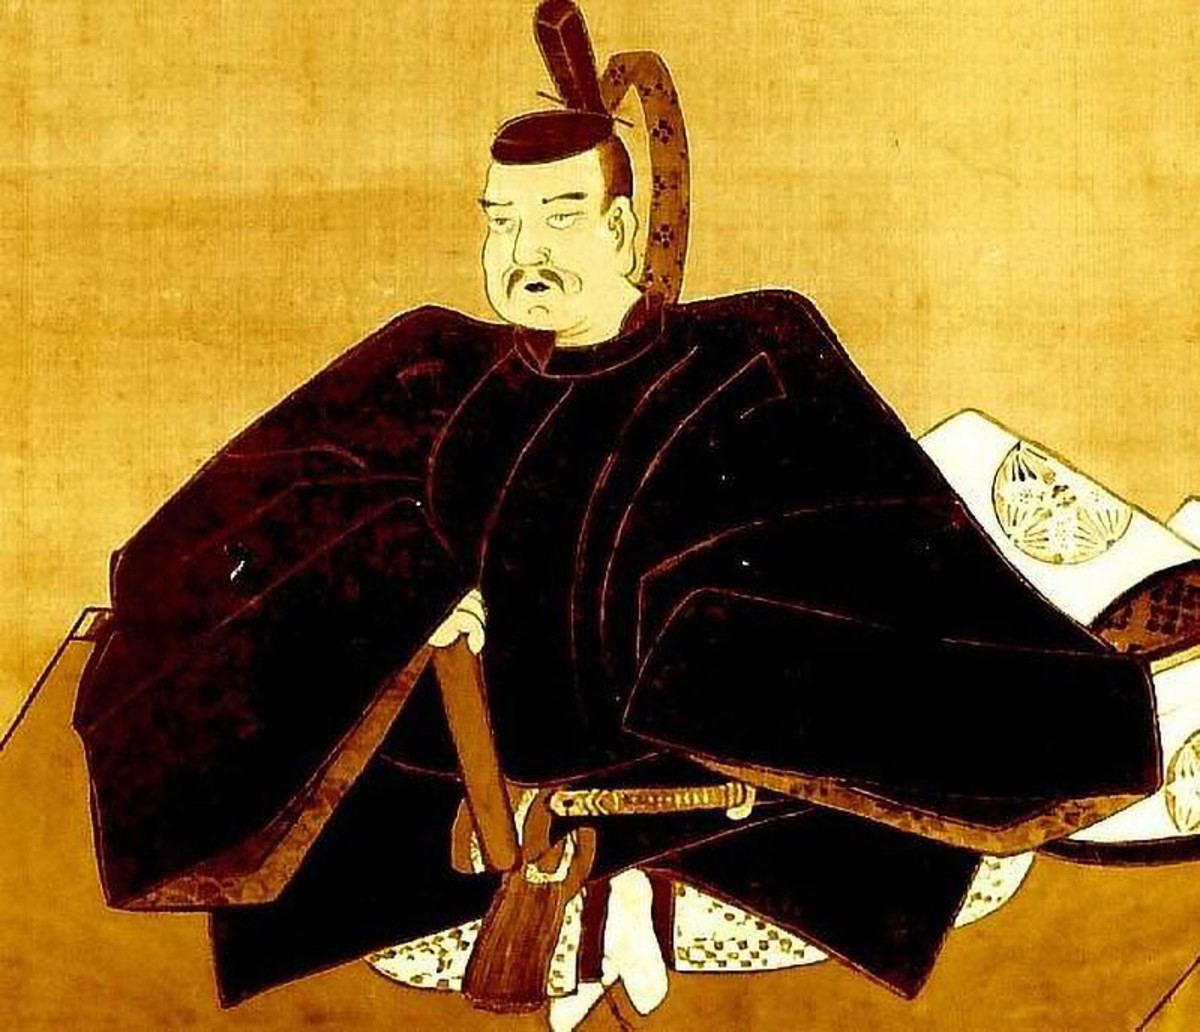 Historical depiction of Taira no Masakado. This Heian Era samurai, and rebel, is both feared and respected.